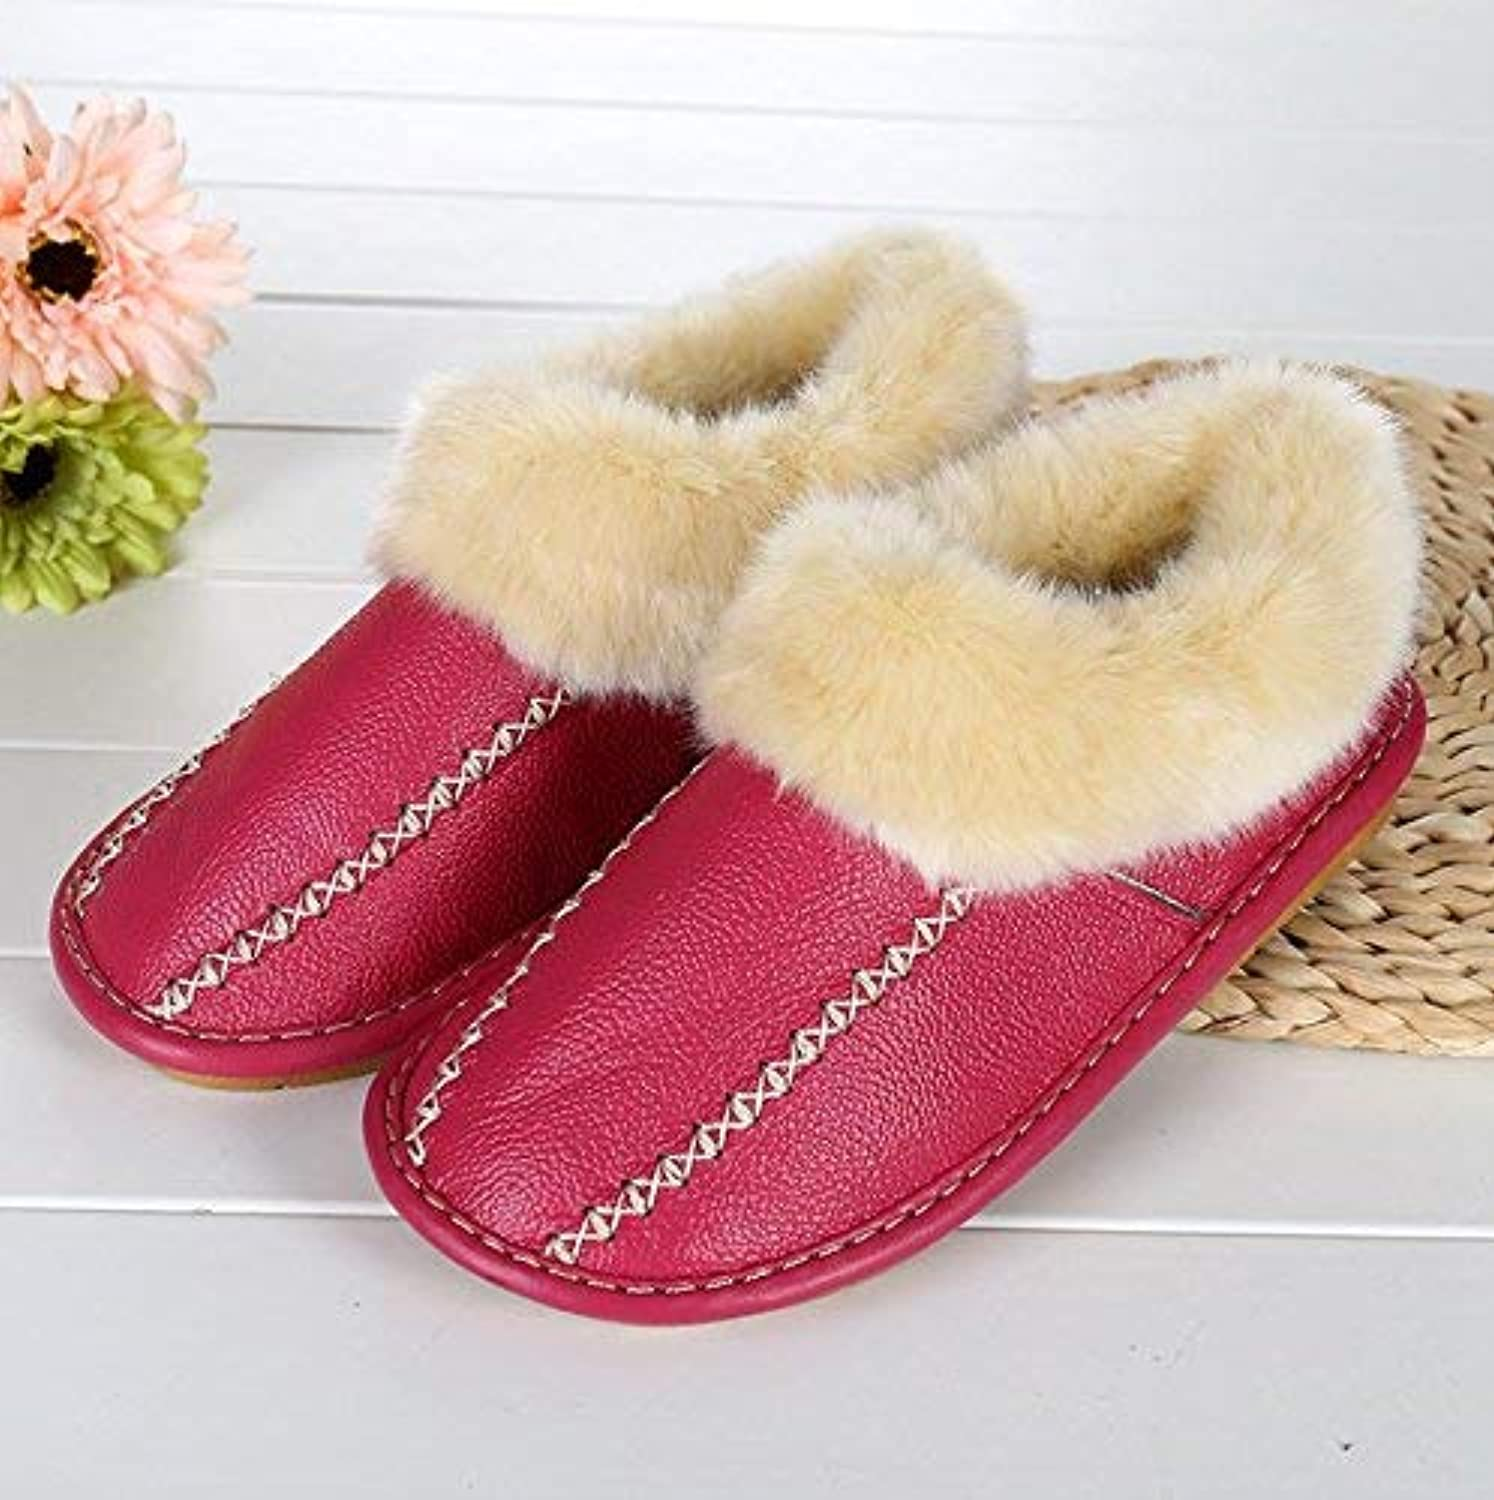 So8ooa Lady Slippers Ladies Casual Faux-Leather Padded Slippers Home Warm in Autumn and Winter Slippers pink Red for Women 37